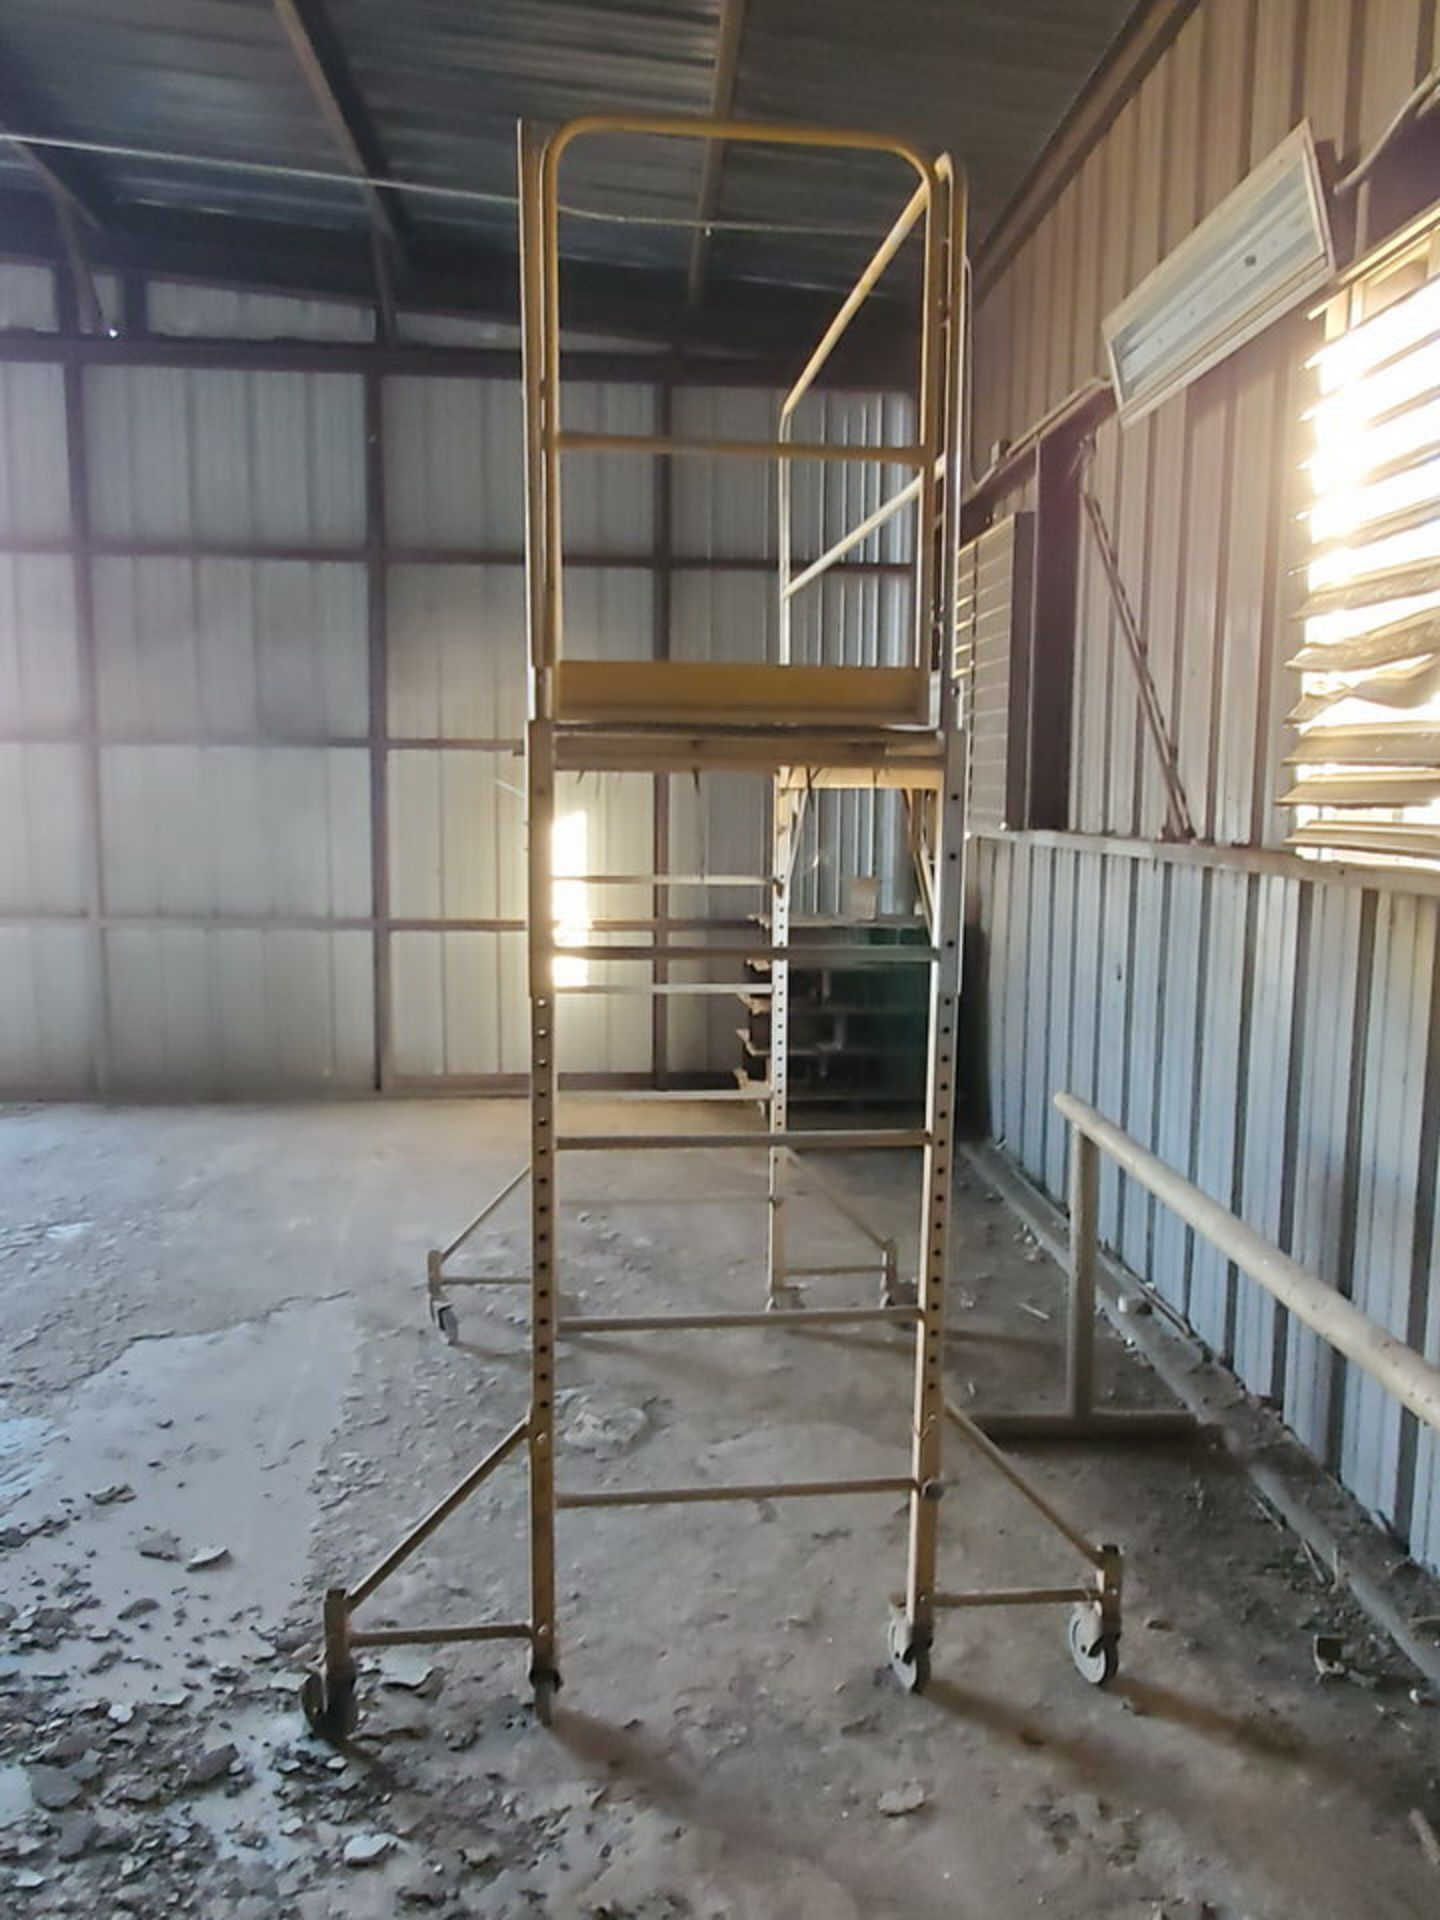 Scaffolds - Image 4 of 5